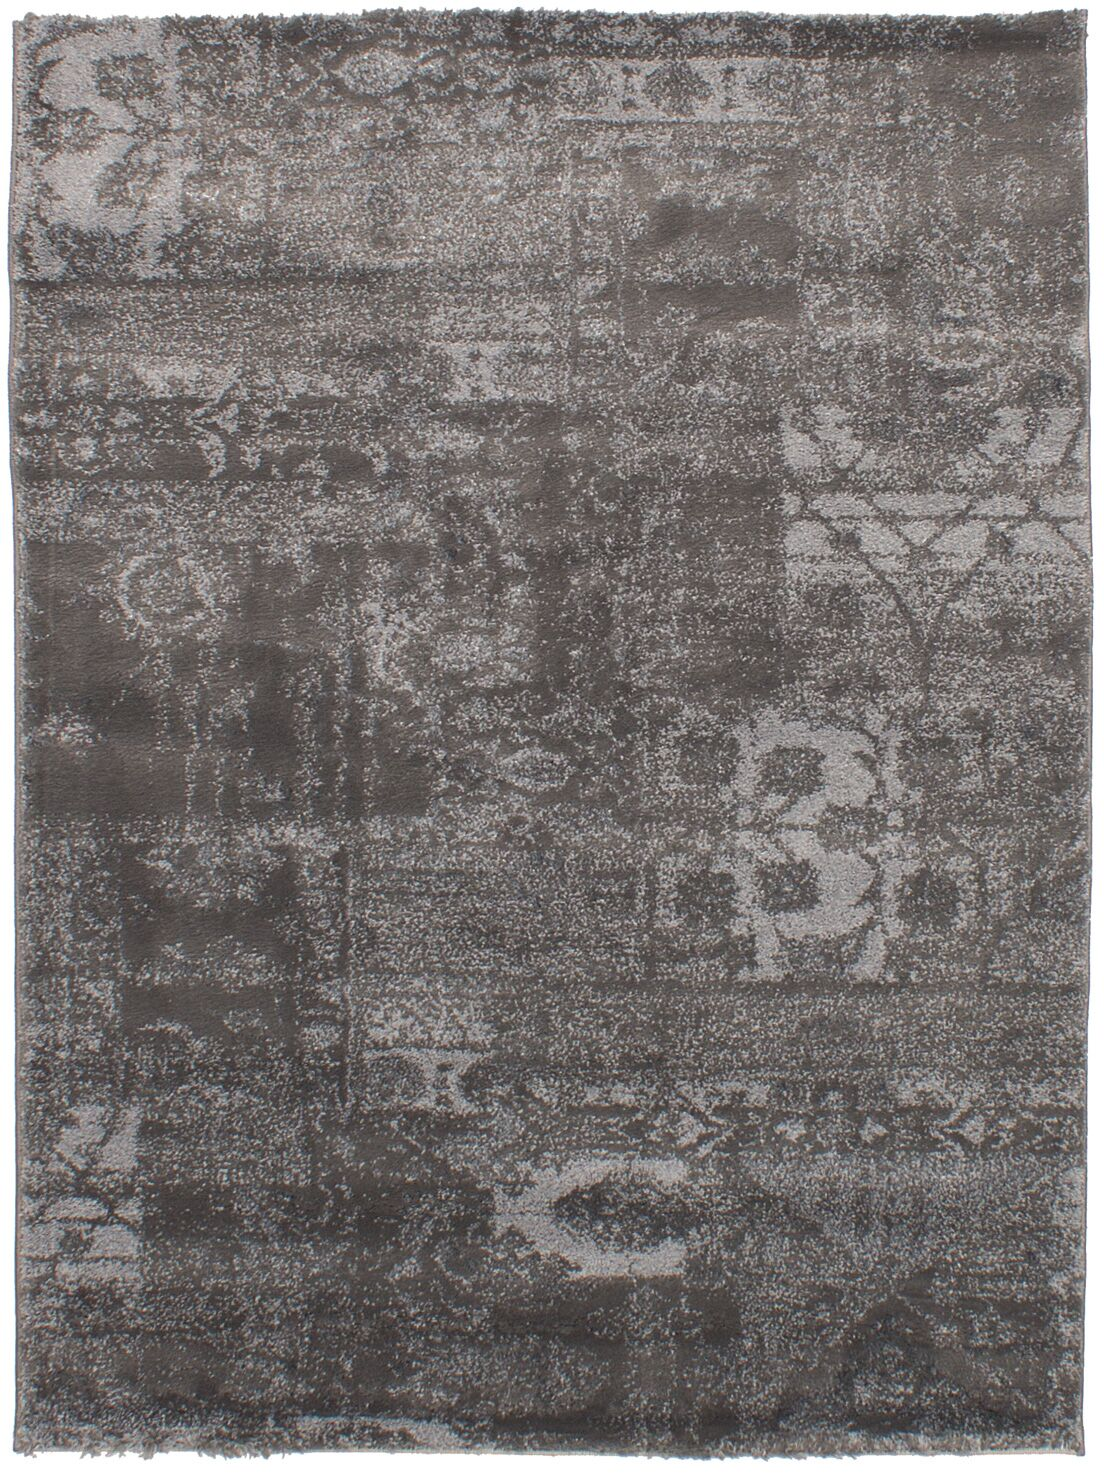 Decarlo Gray Area Rug Rug Size: Rectangle 4'7